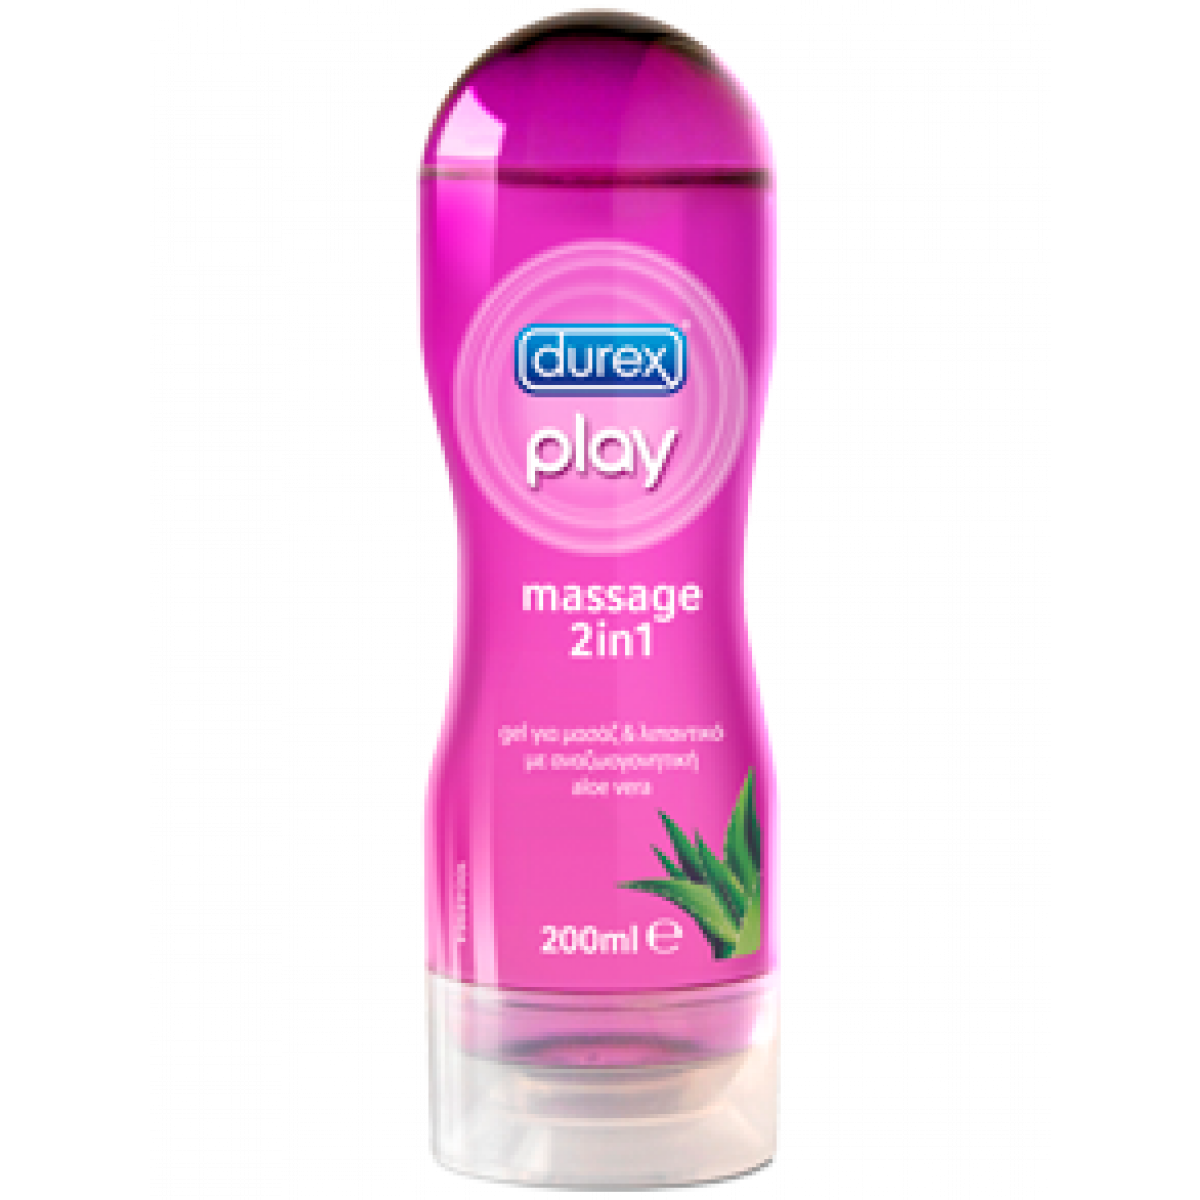 Durex Play Massage 2 In 1 Aloe Gel 200ml Doctor Pharmacy Silky Lubricant 100ml 26